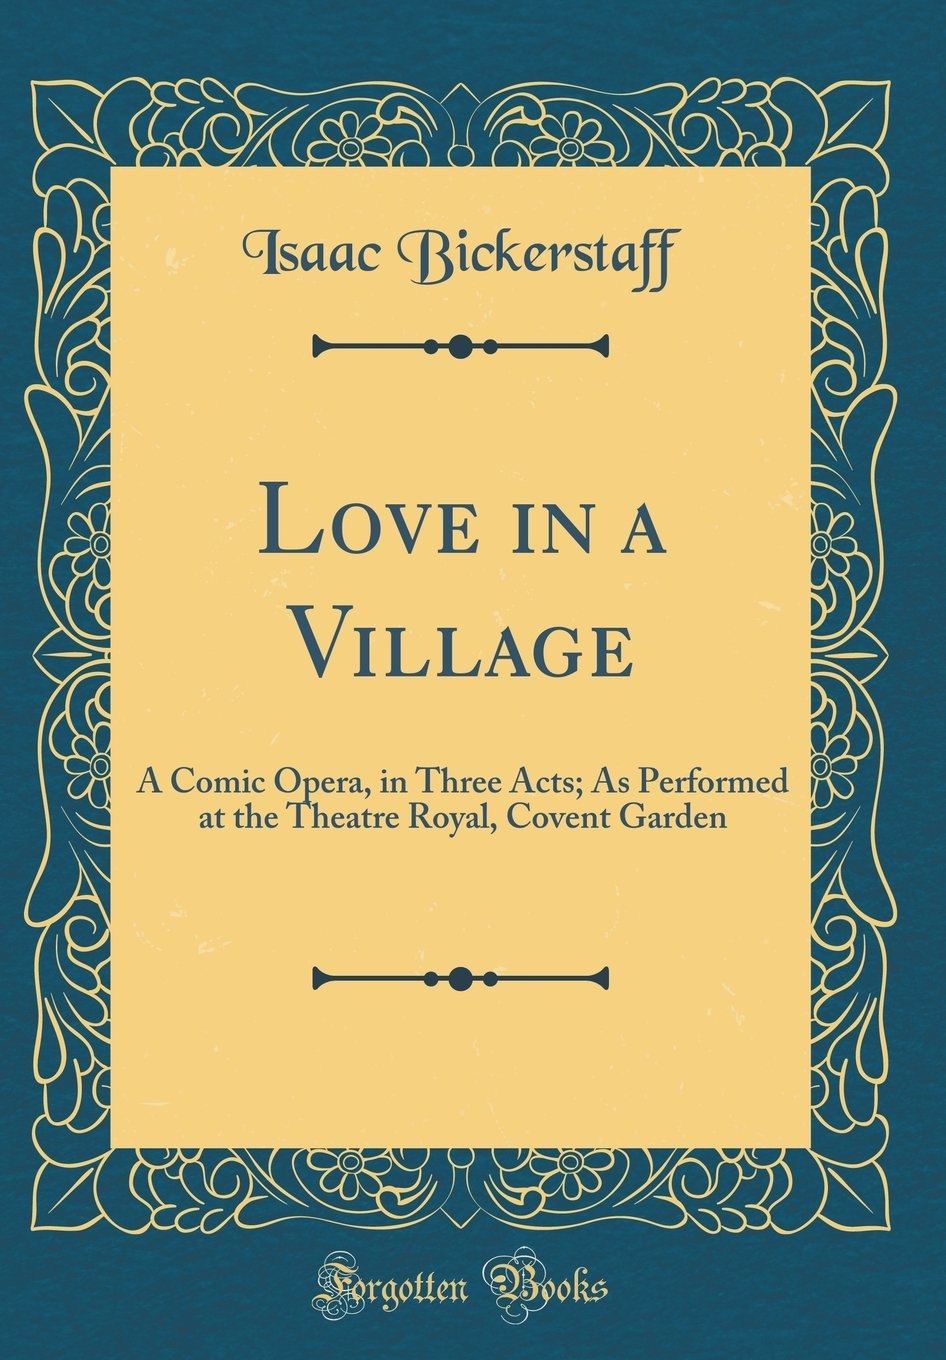 Love in a Village: A Comic Opera, in Three Acts; As Performed at the Theatre Royal, Covent Garden (Classic Reprint)